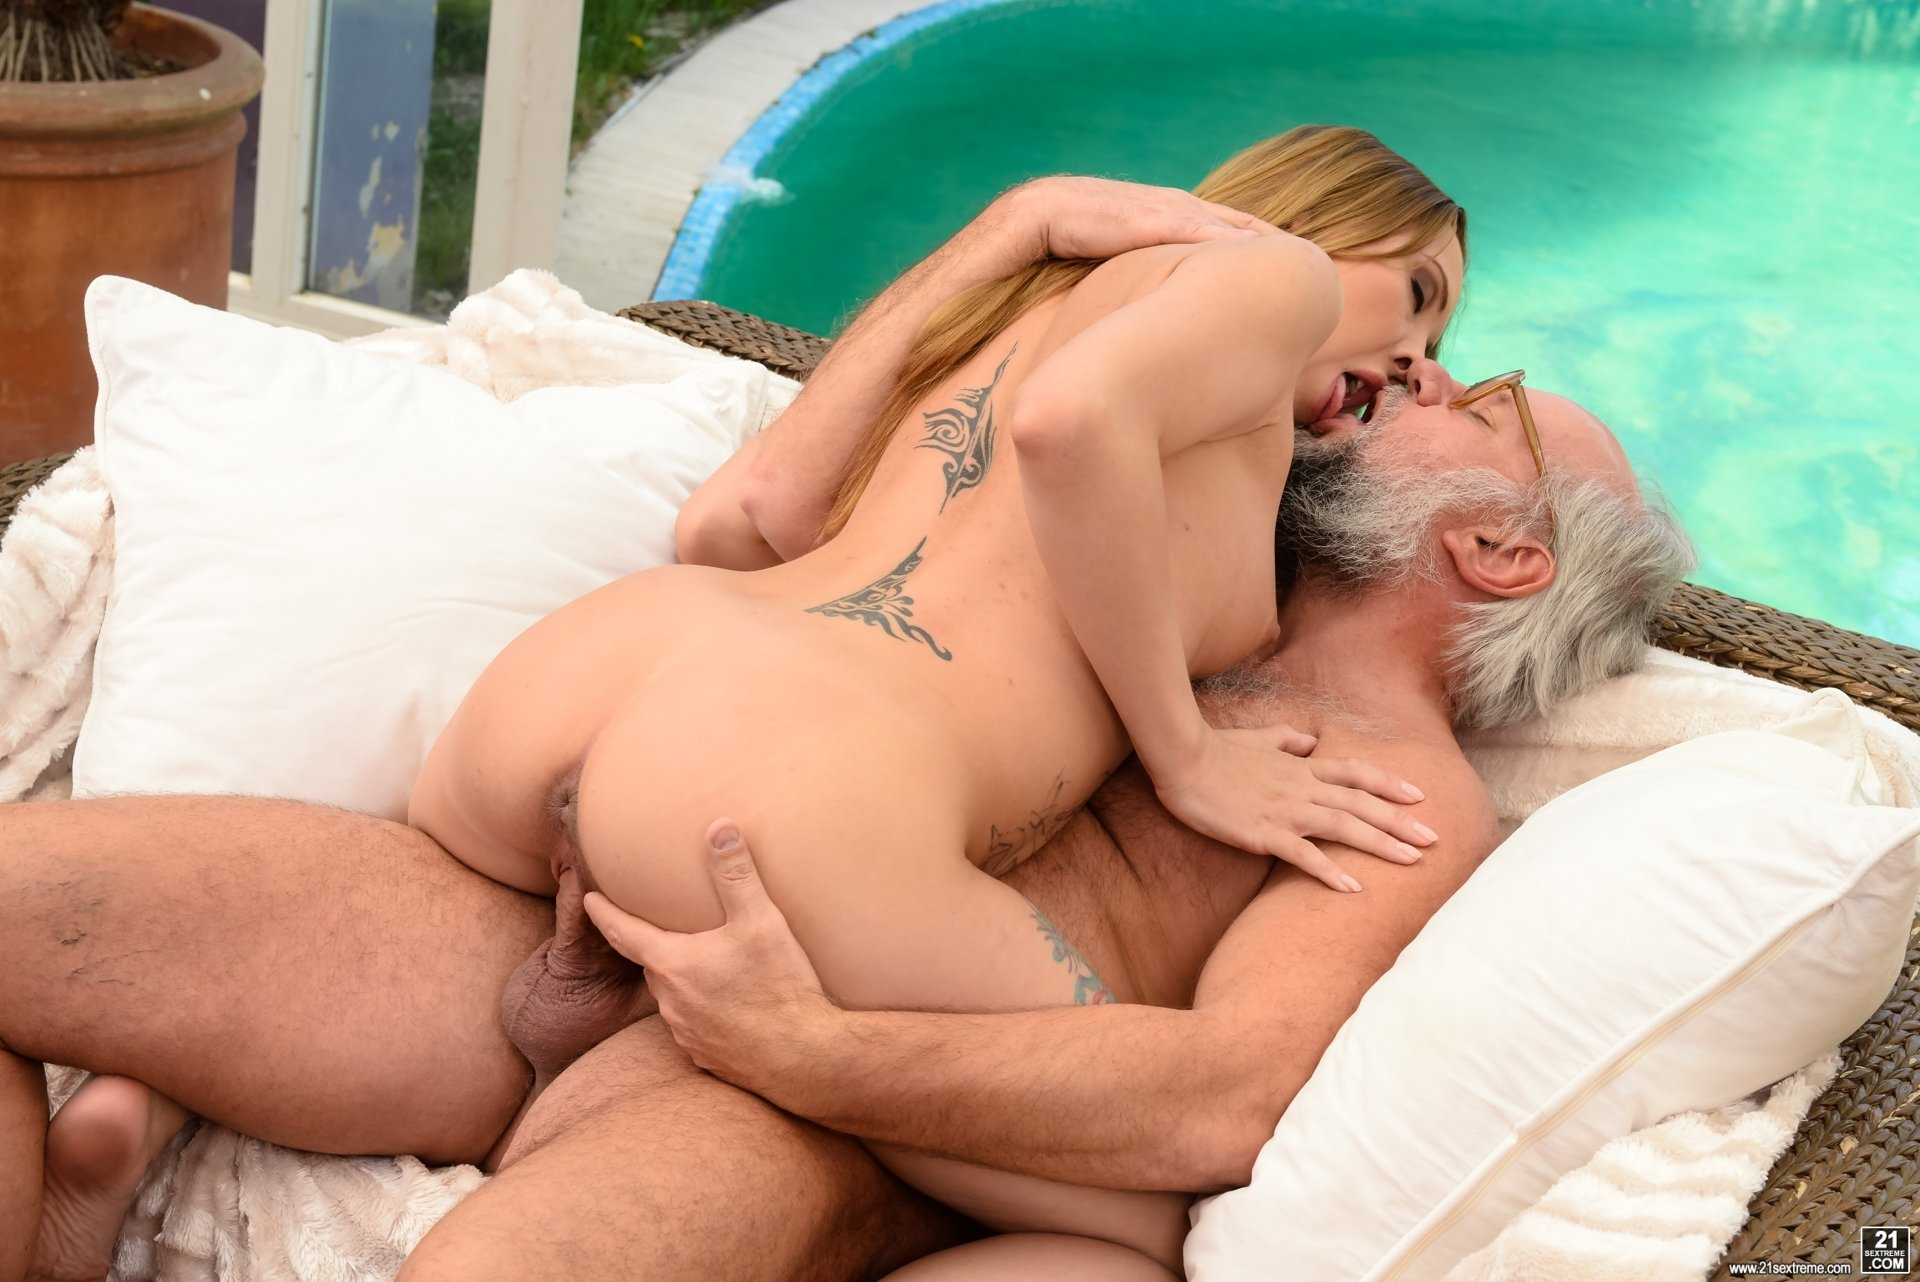 Sex mother-in-law home movies 100 free